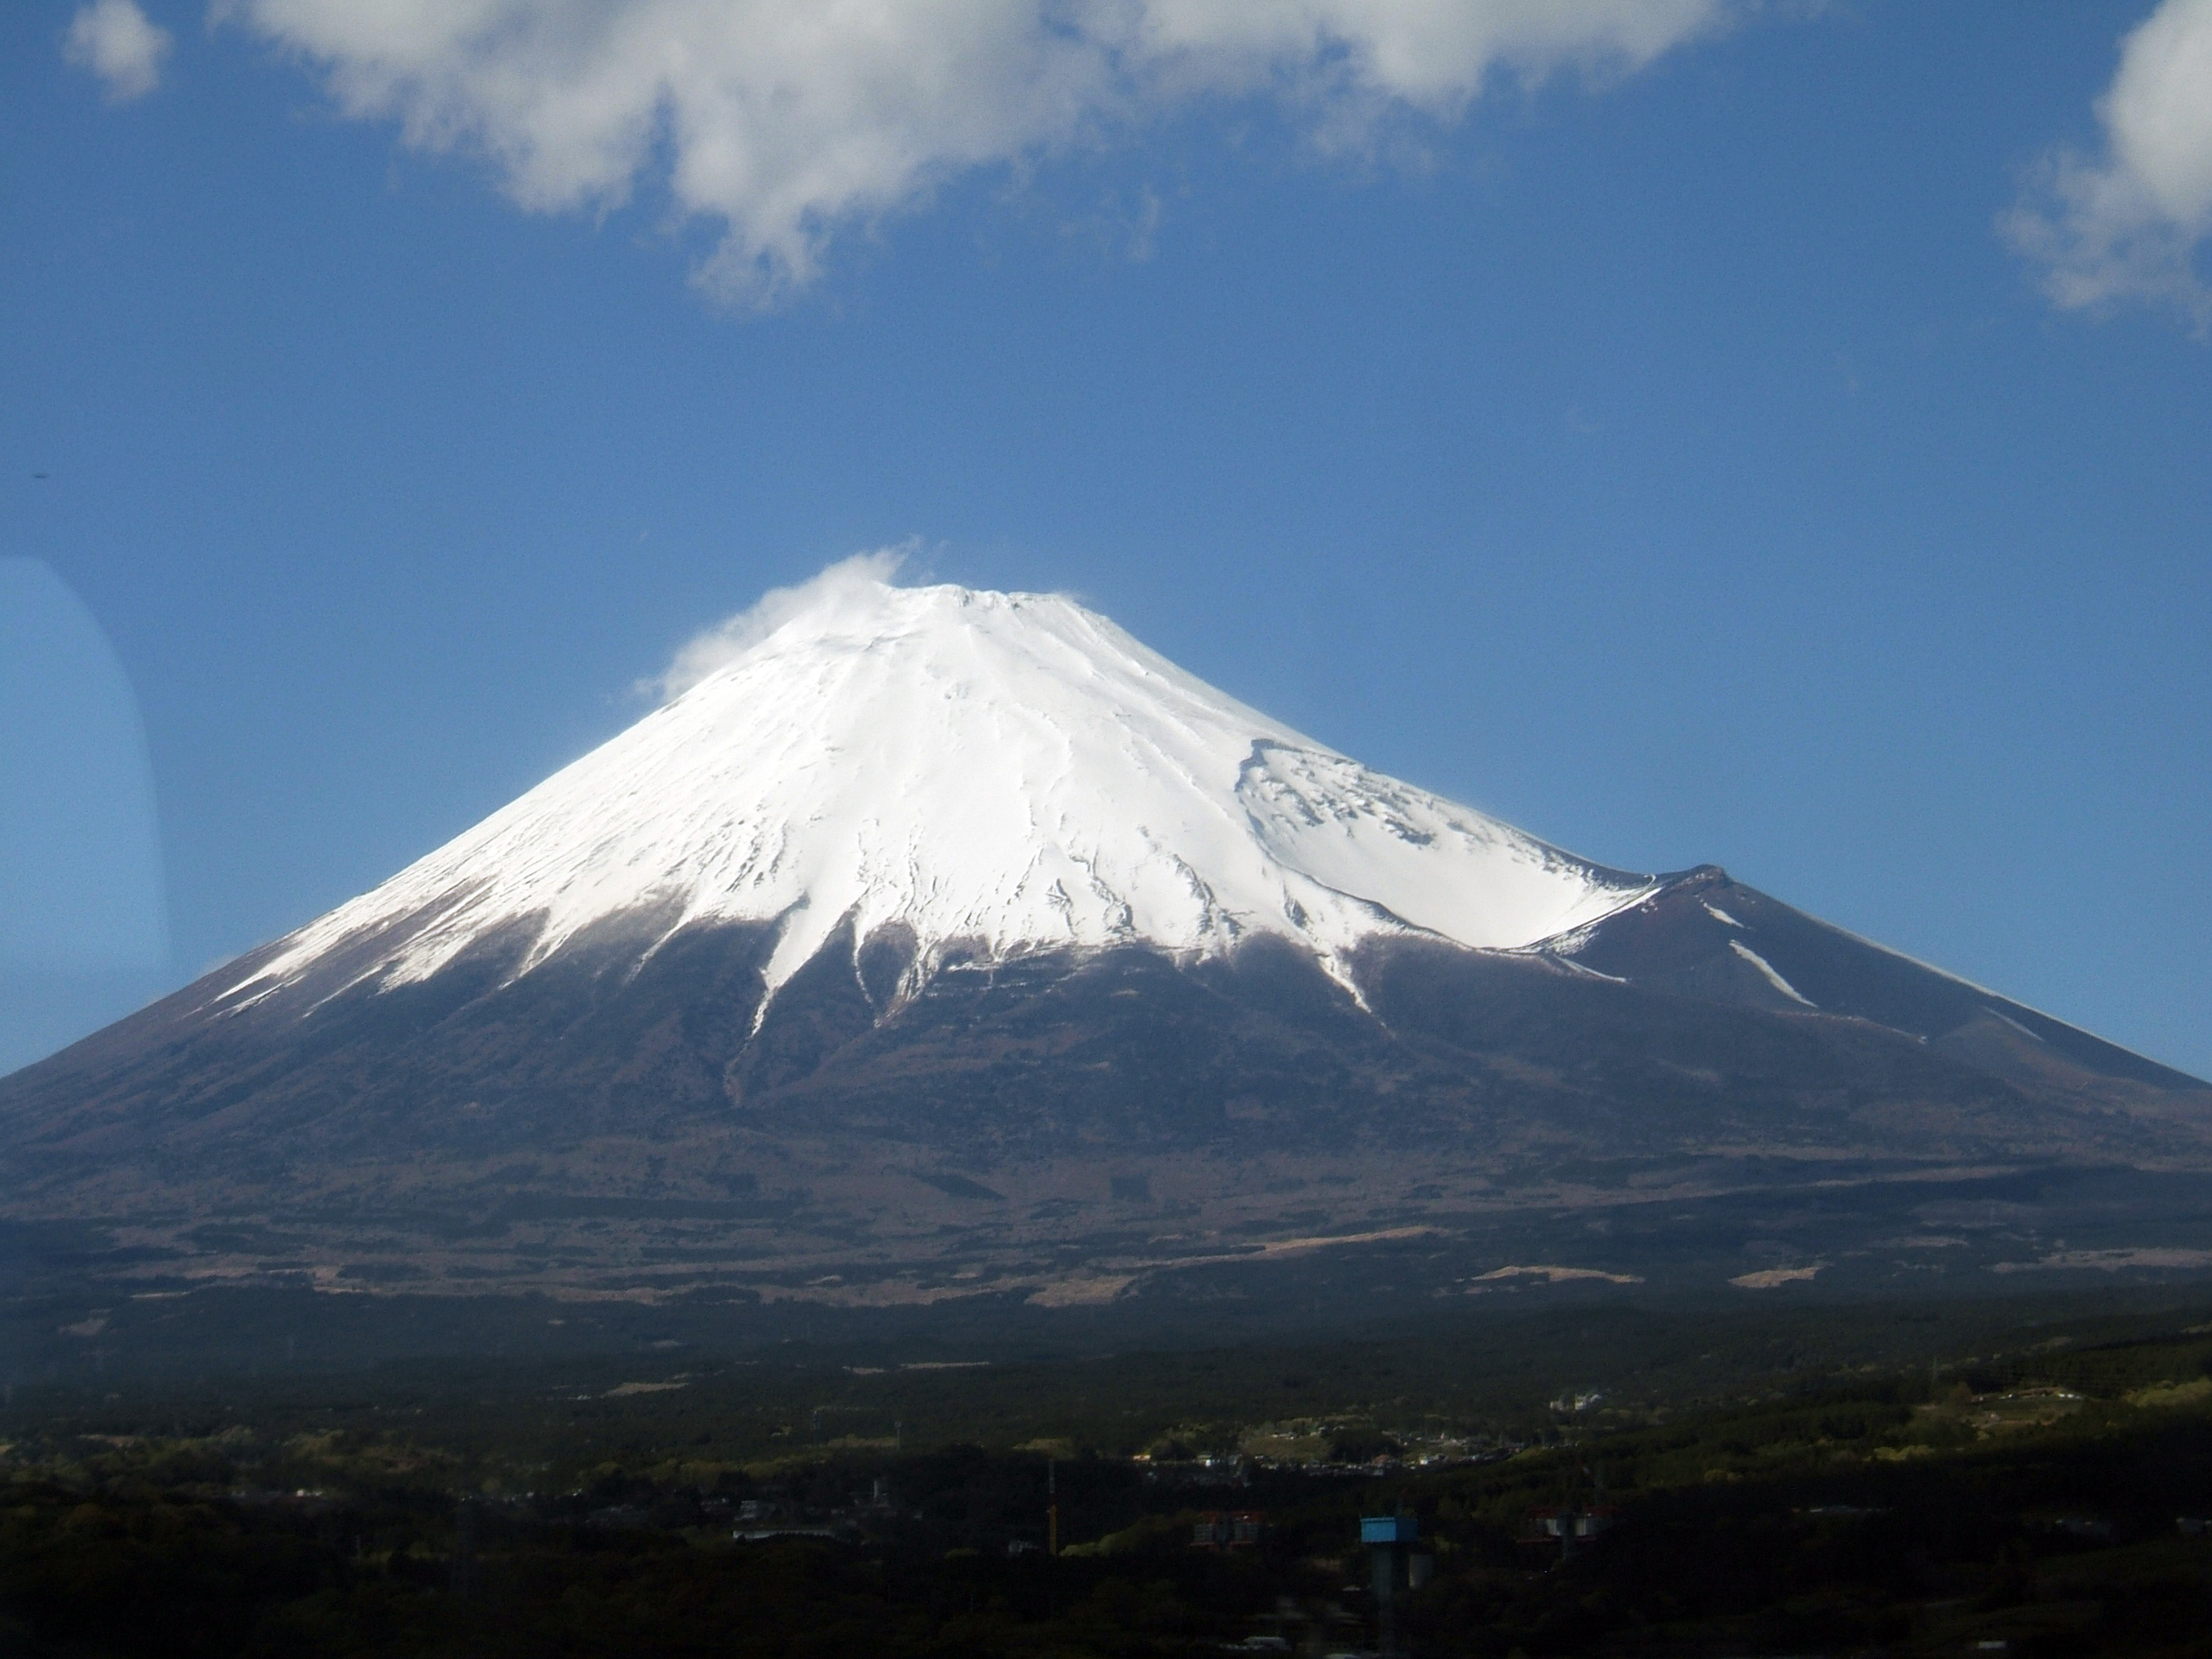 File:Mount Fuji Sanroku.jpg - Wikimedia Commons